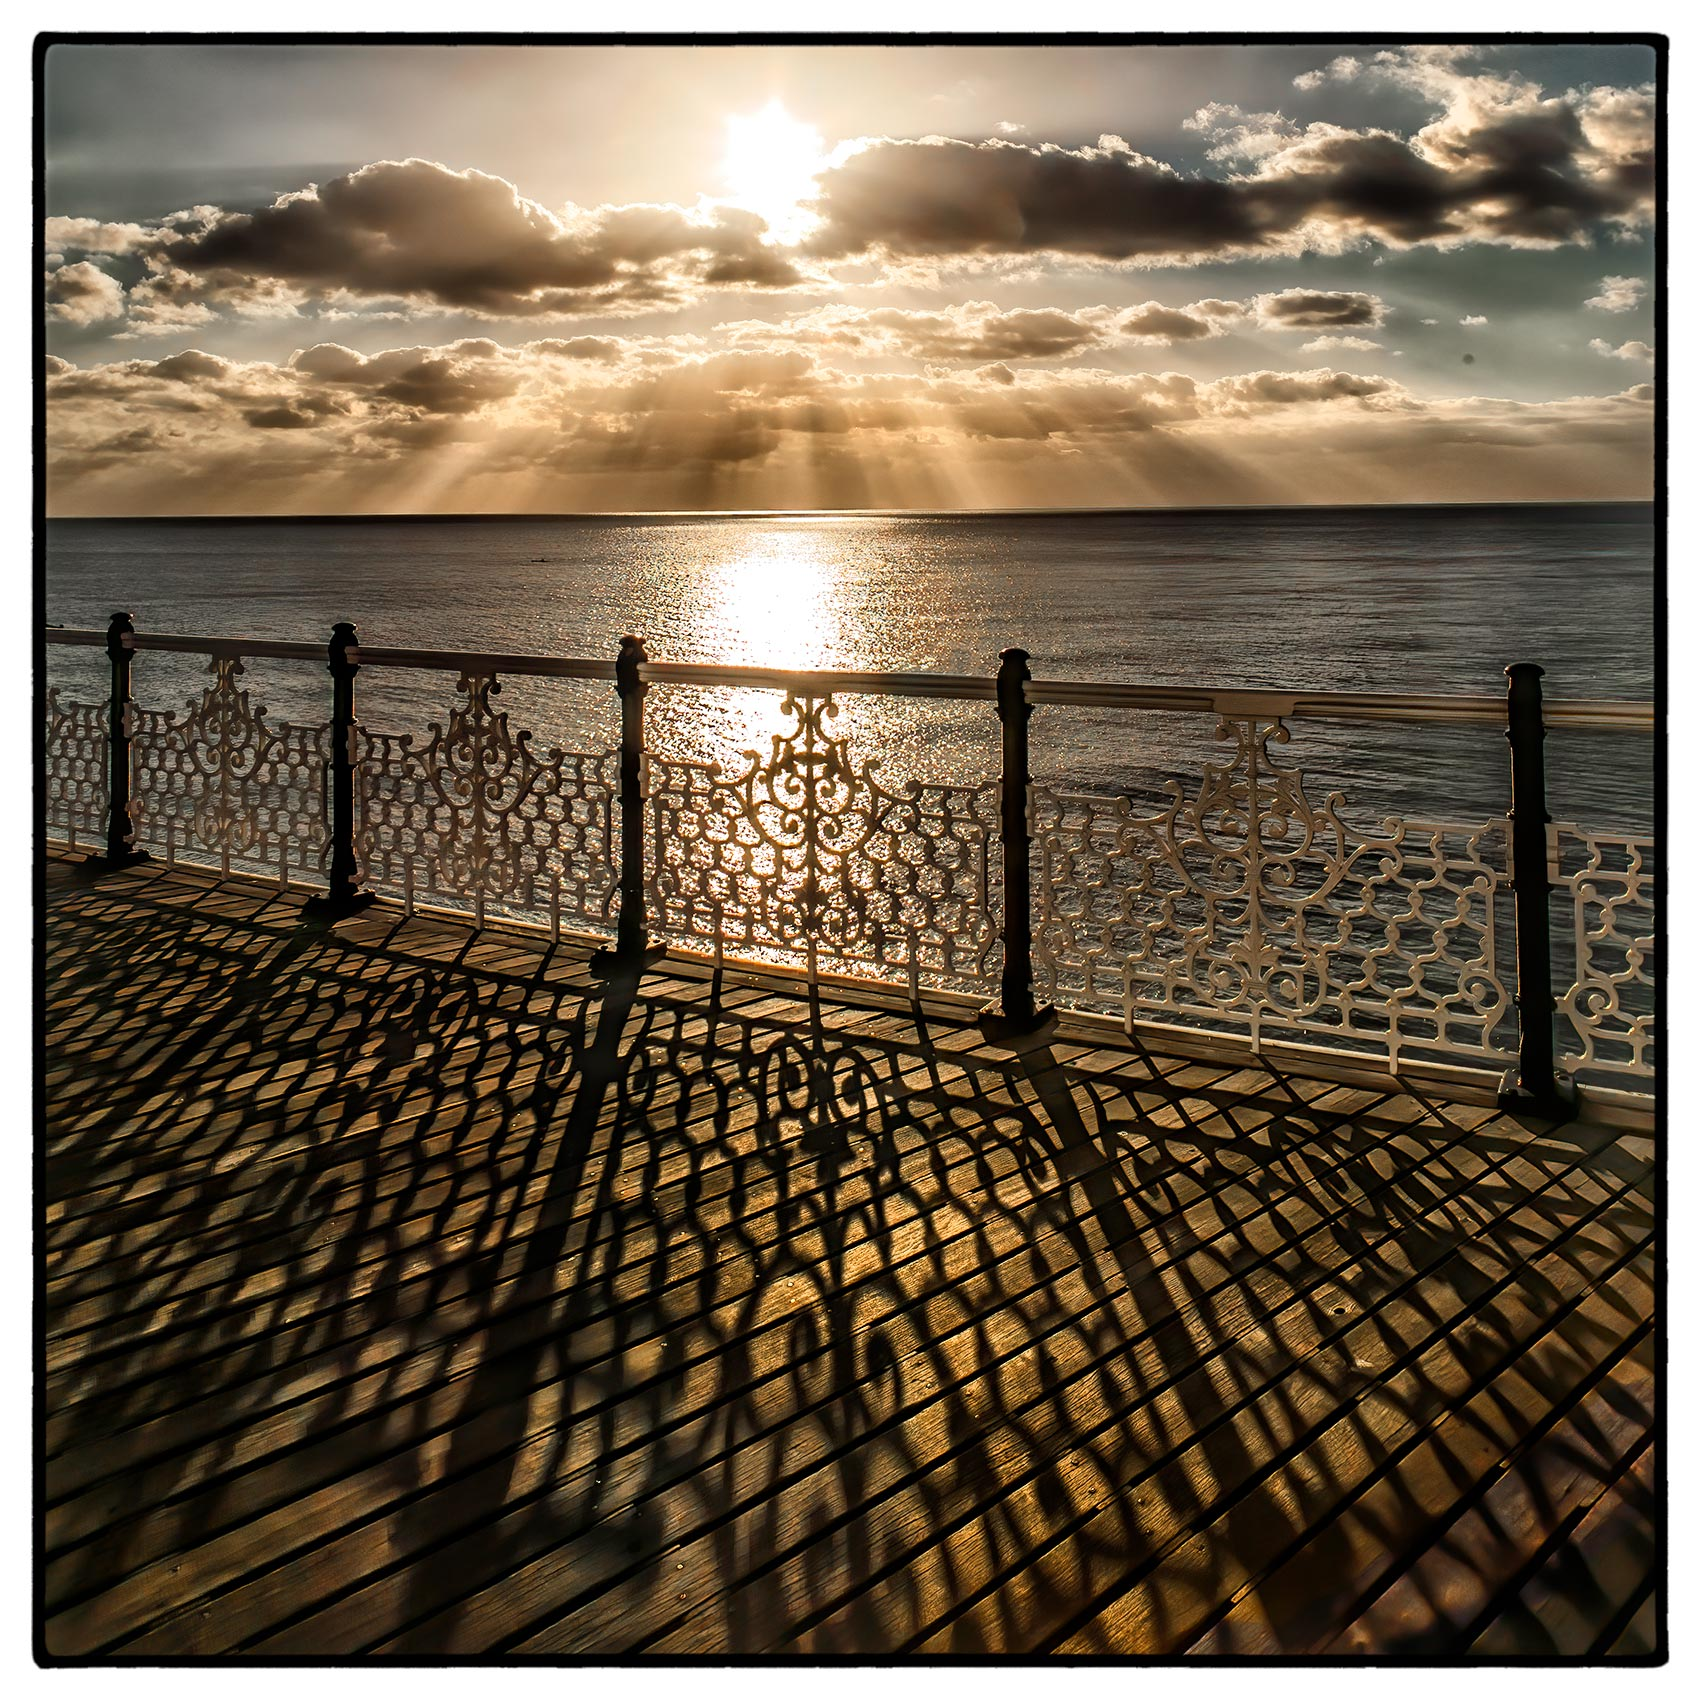 a brilliant sun breaks through the clouds  as it sets over brighton pier in southern england